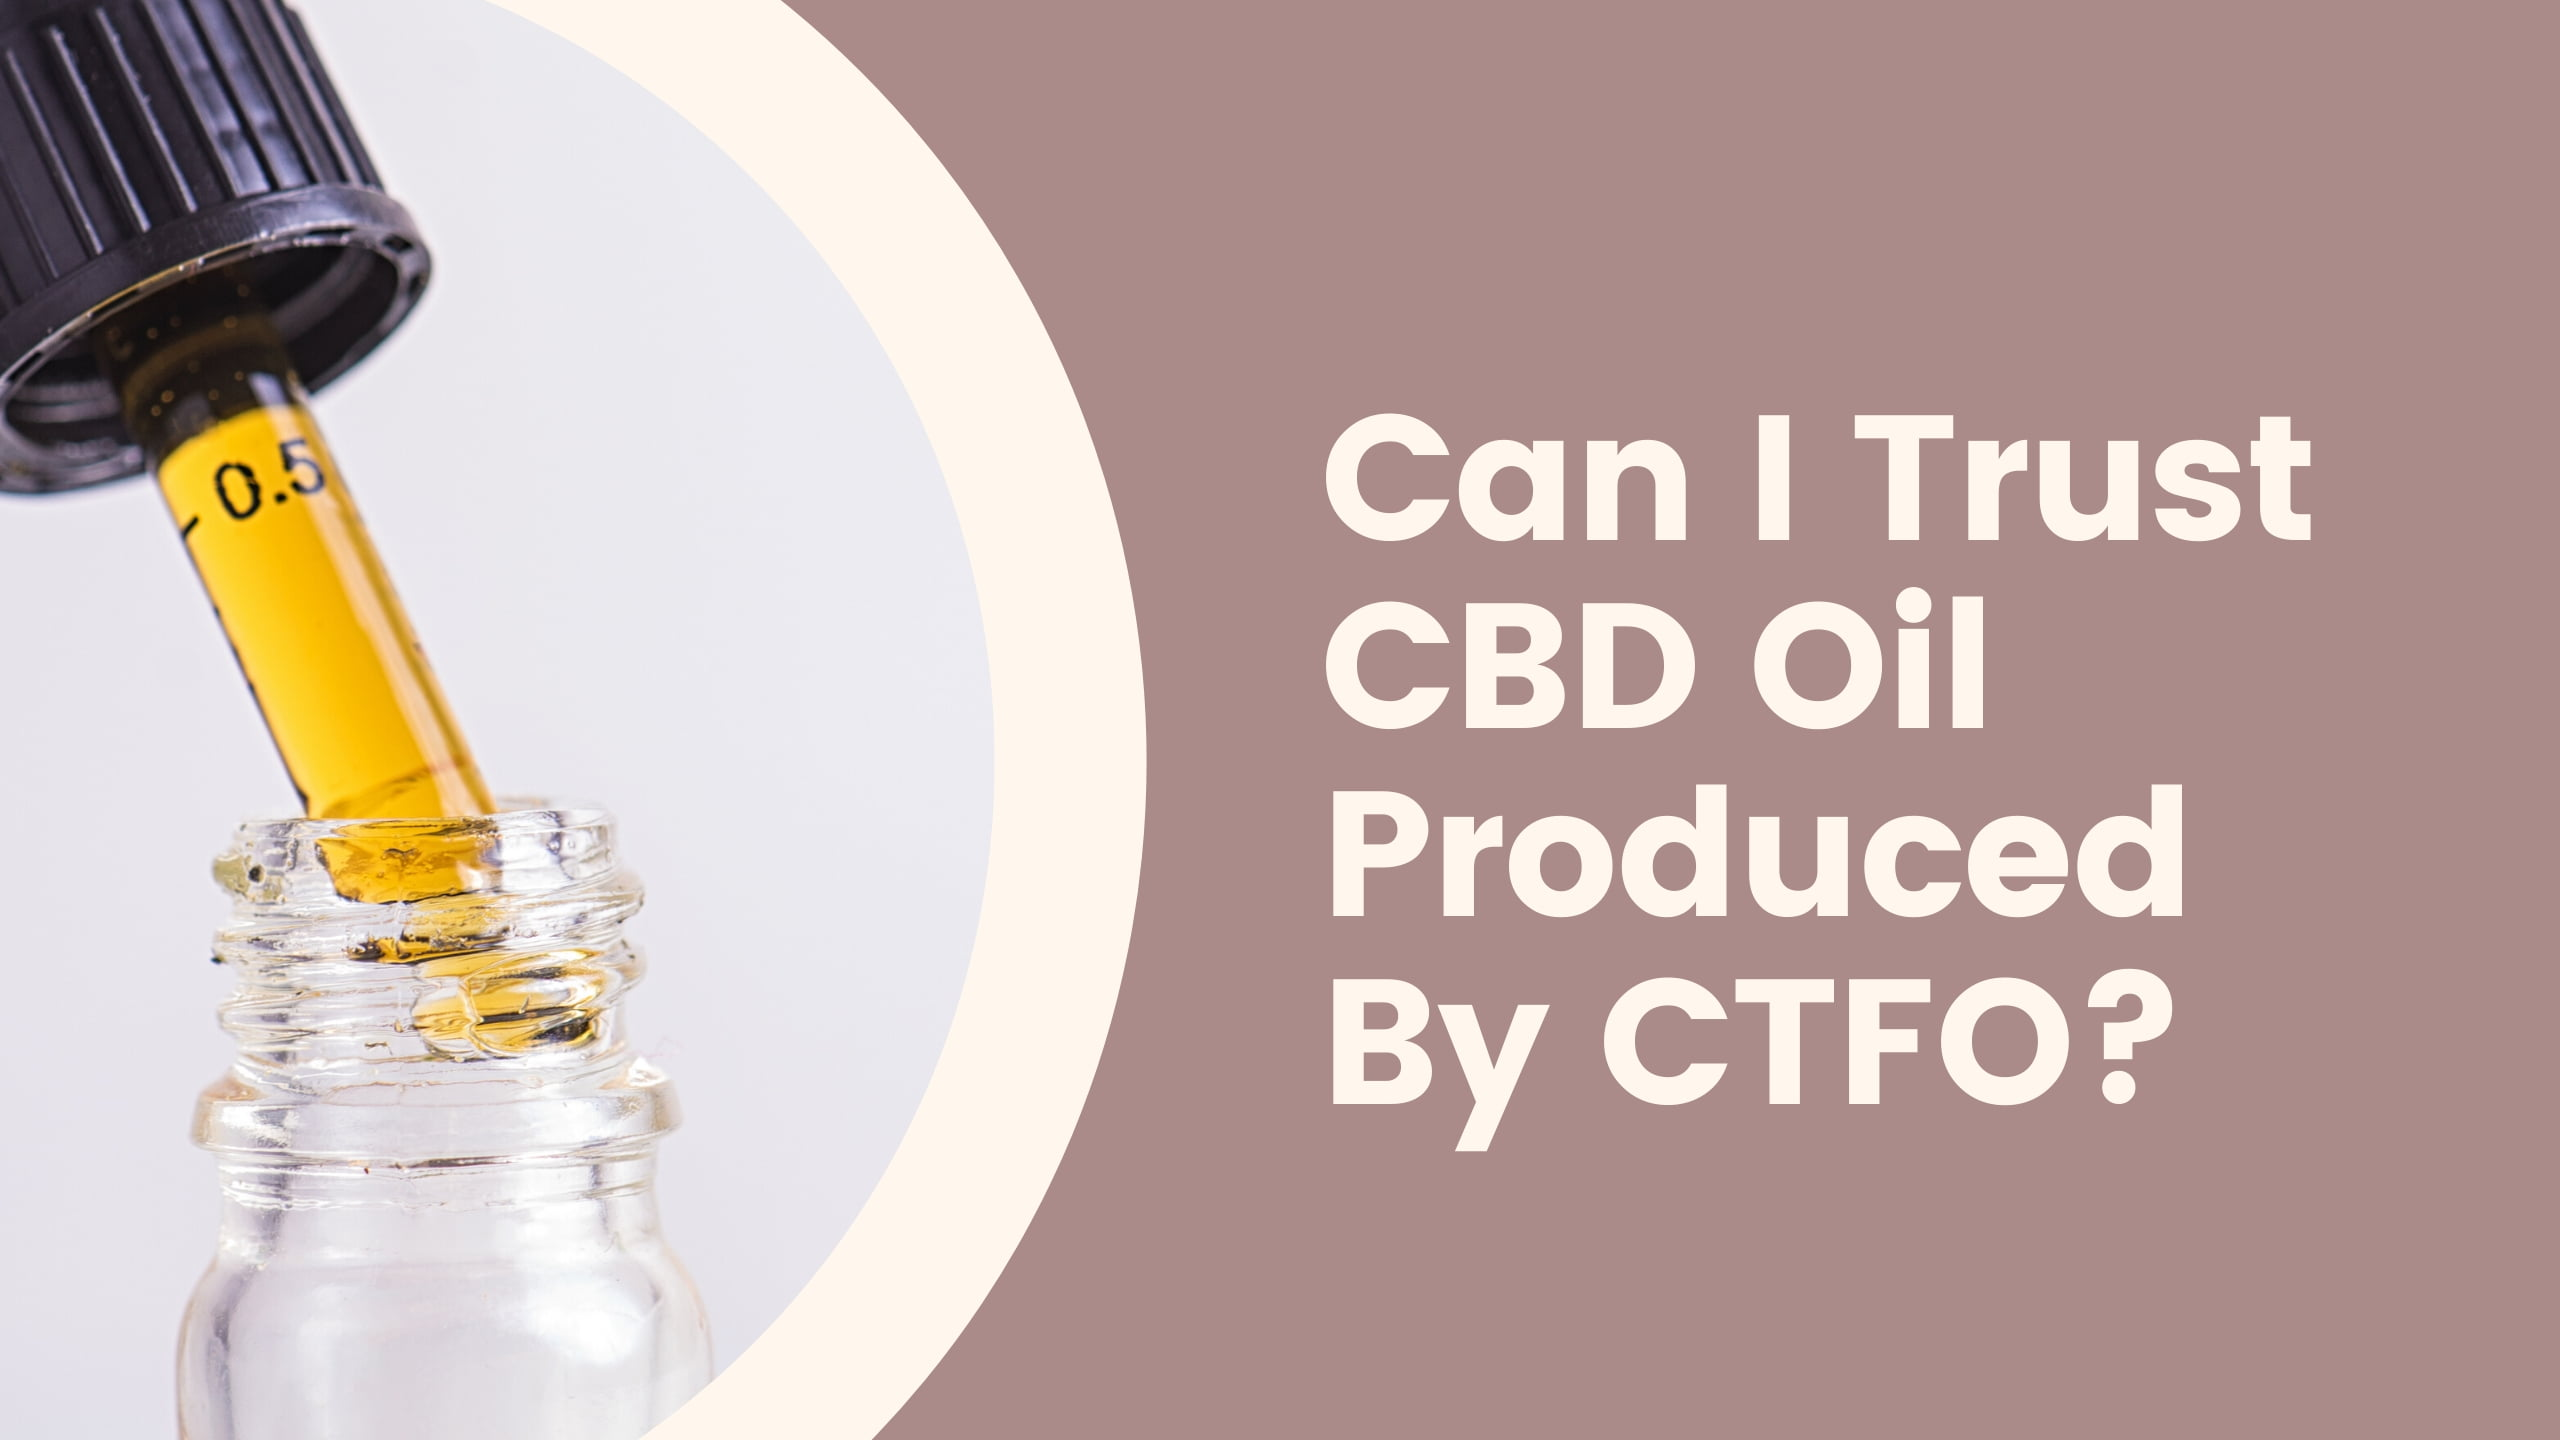 Can I Trust CBD Oil Produced By CTFO?